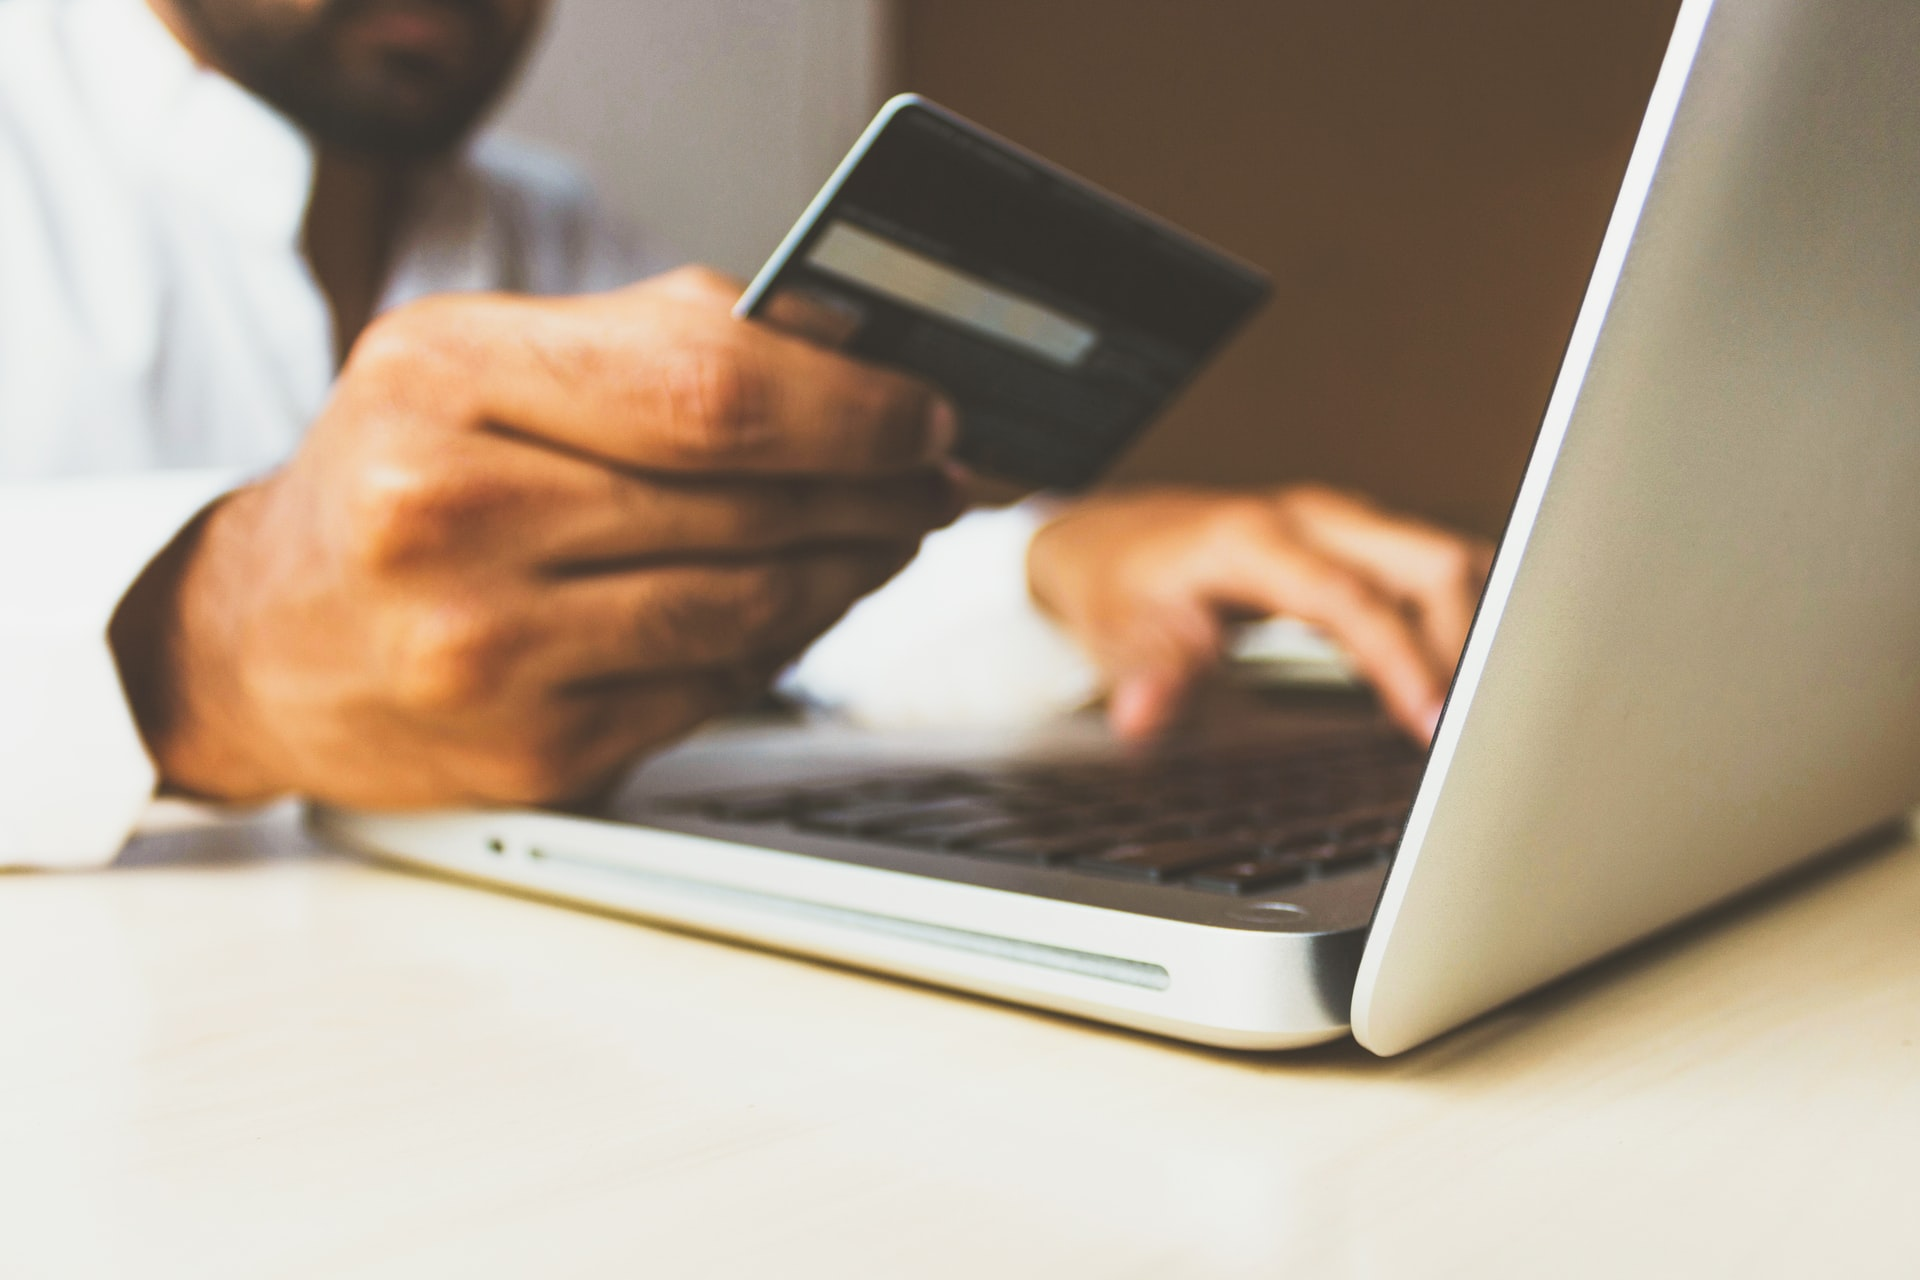 Online shopping on laptop computer with credit card.